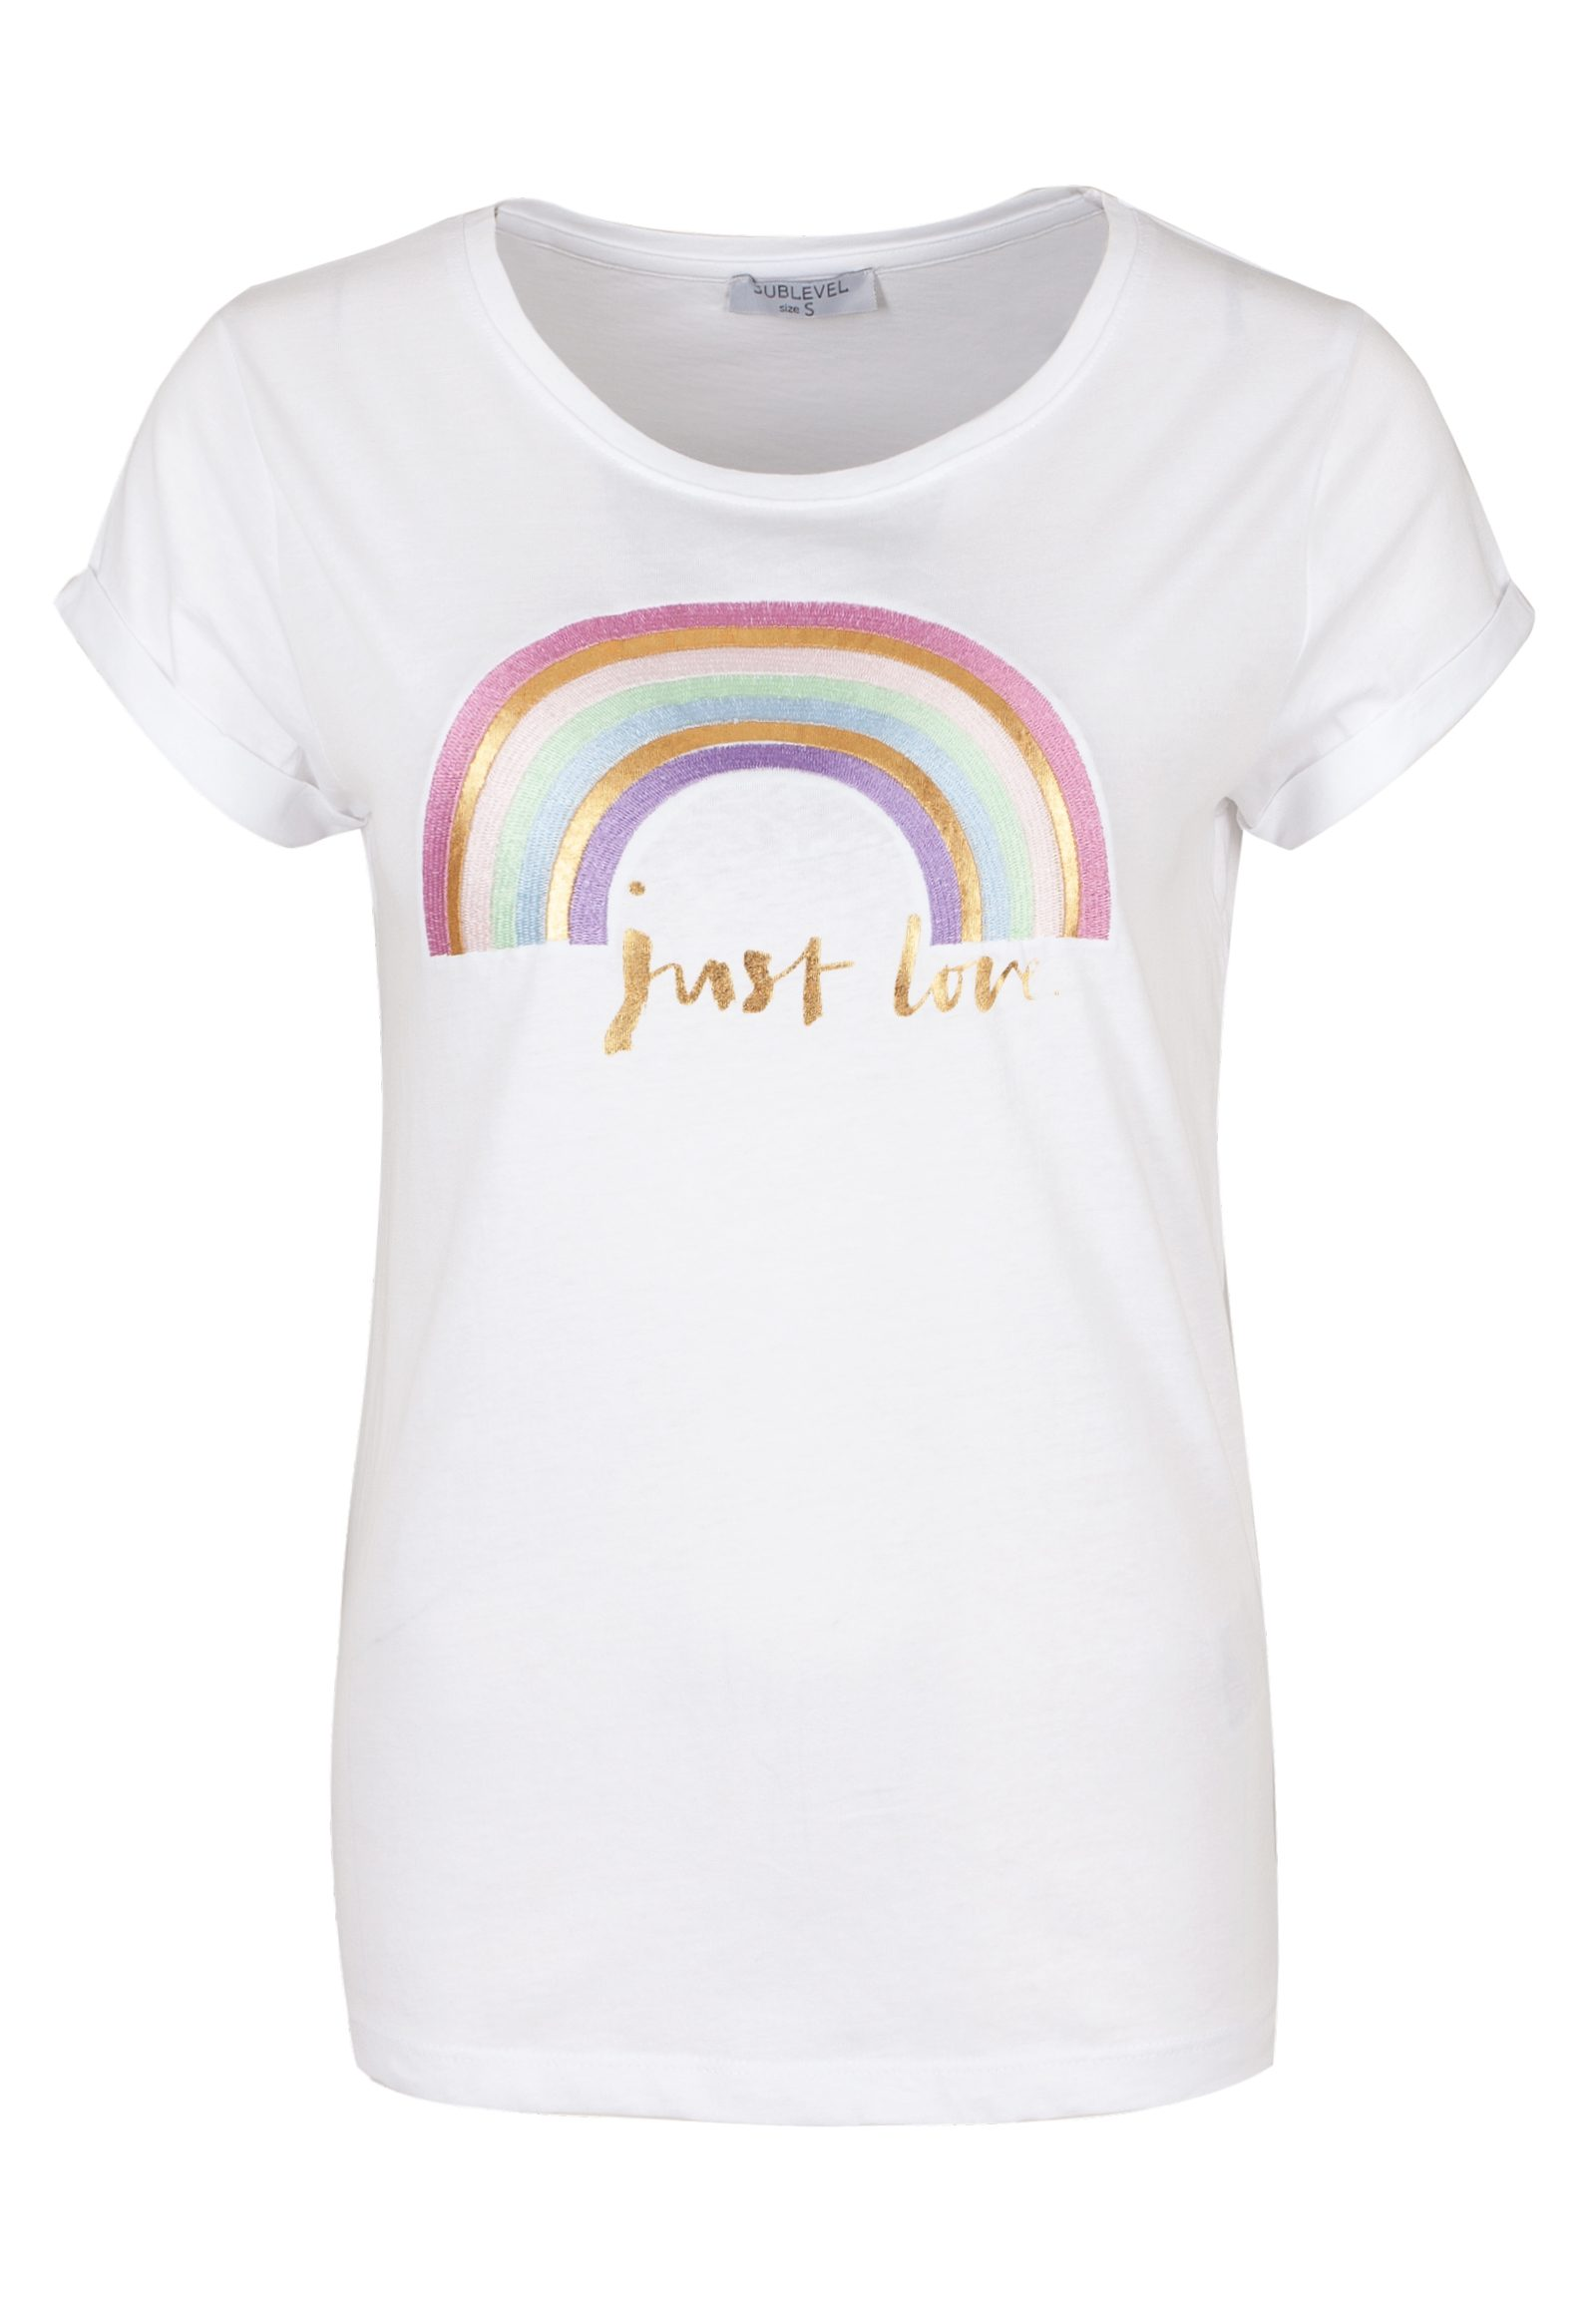 SUBLEVEL Damen T-Shirt mit Rainbow Stickerei weiß | 04058427482929